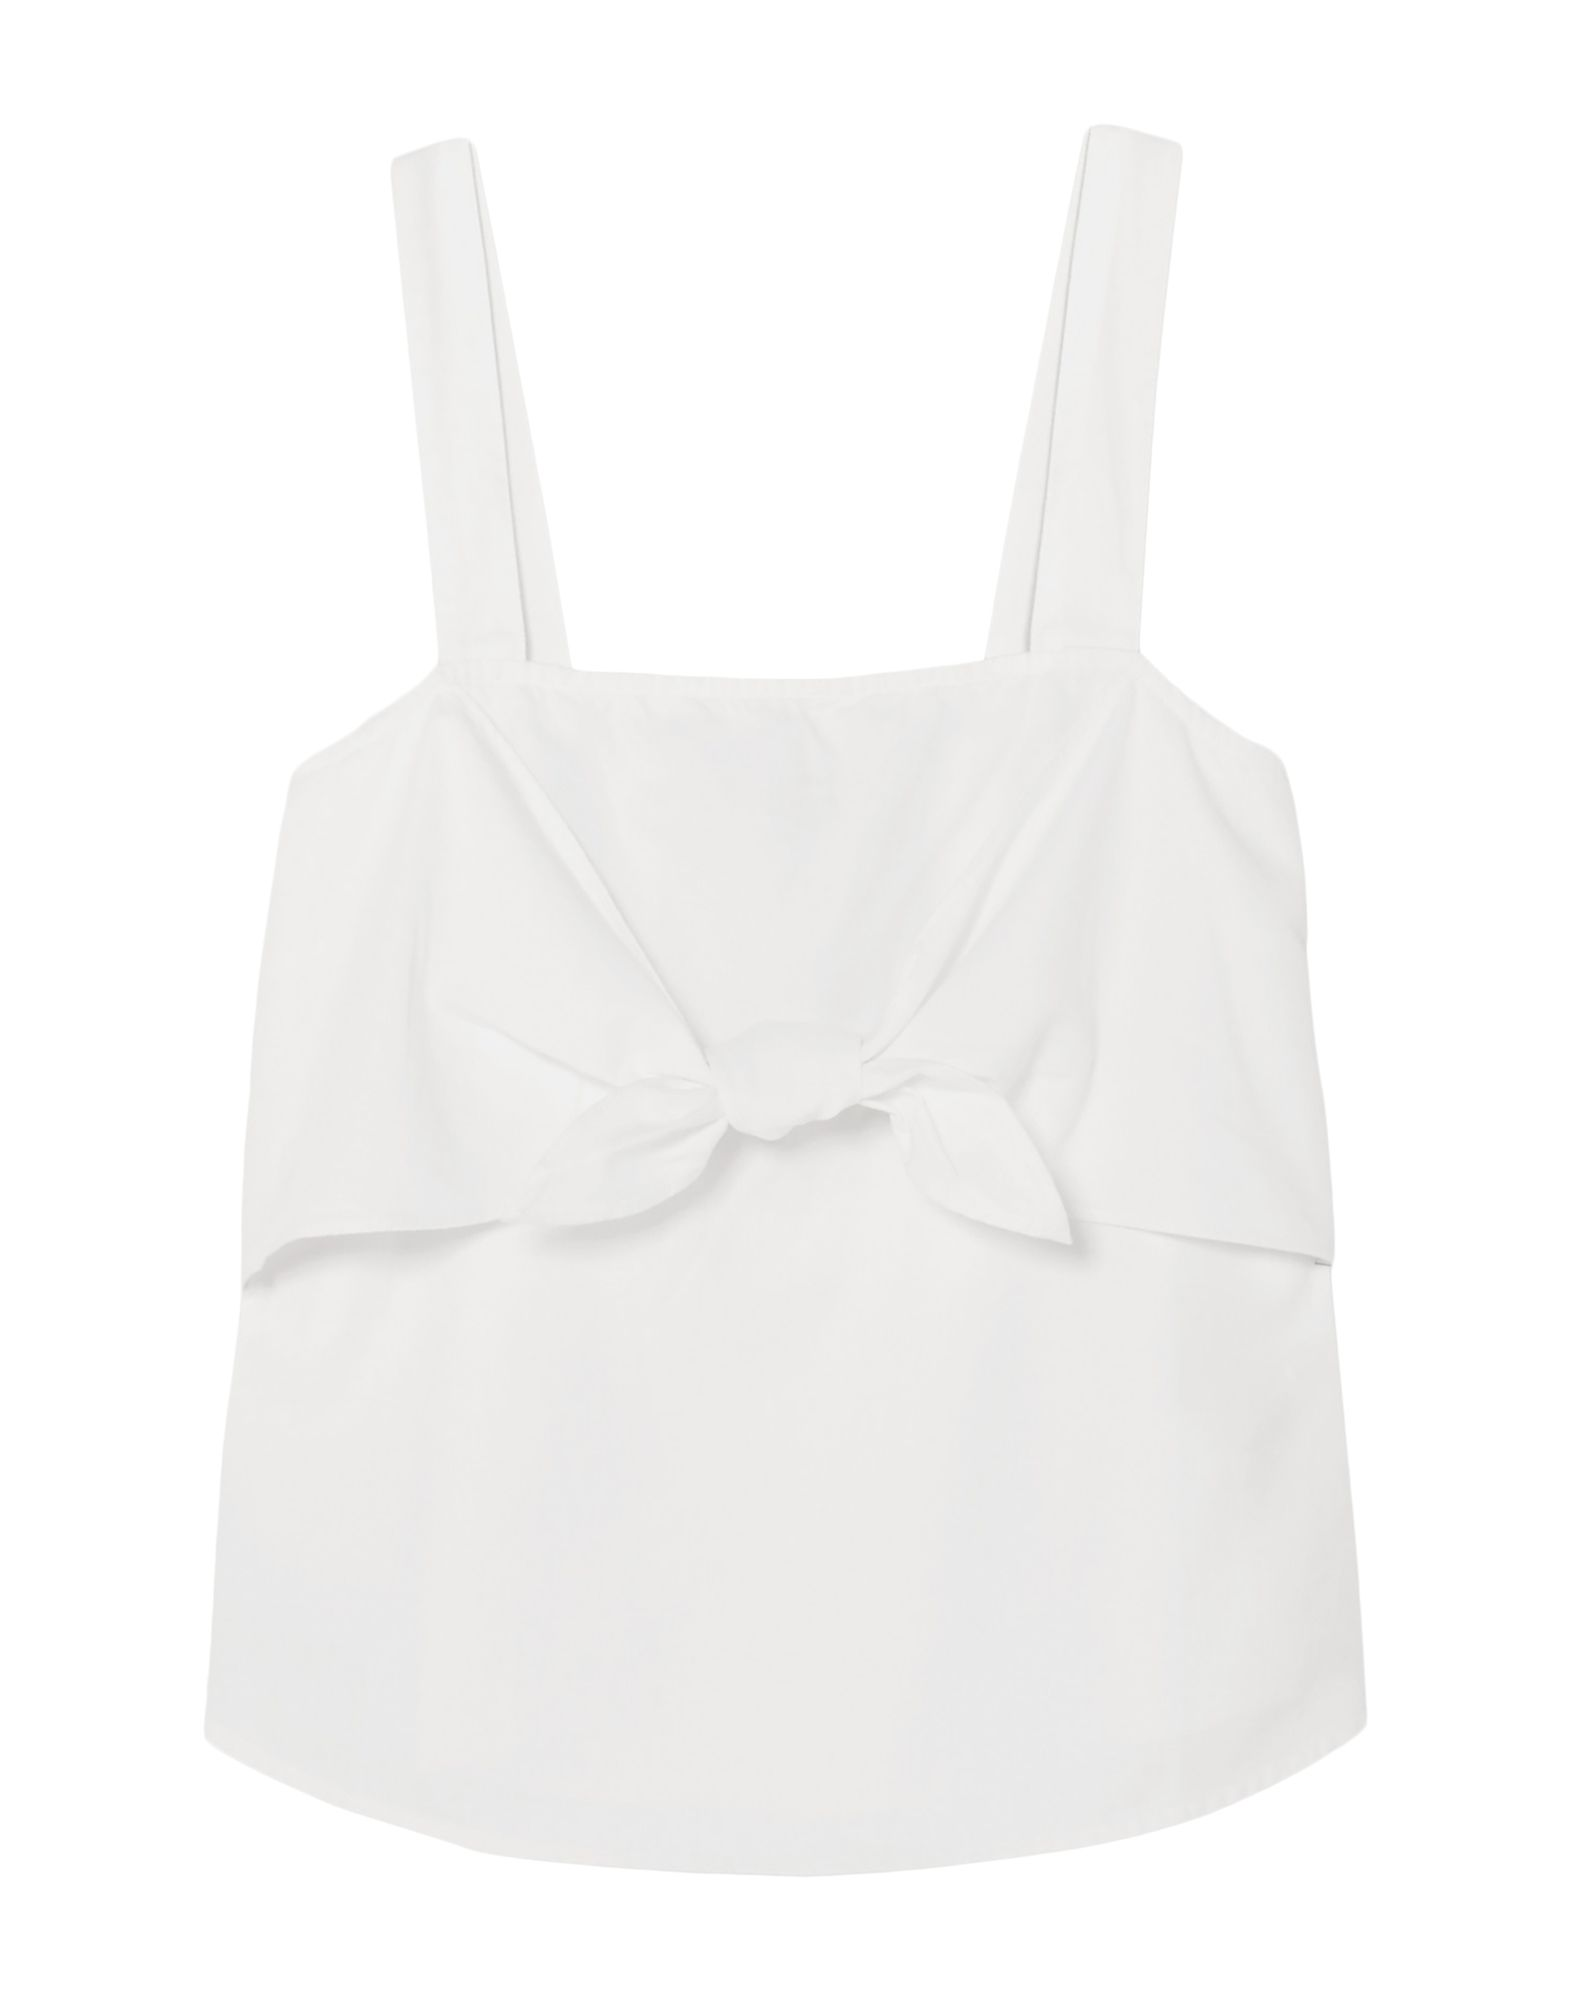 MADEWELL Tops. plain weave, no appliqués, basic solid color, deep neckline, sleeveless, no pockets. 60% Cotton, 40% Modal